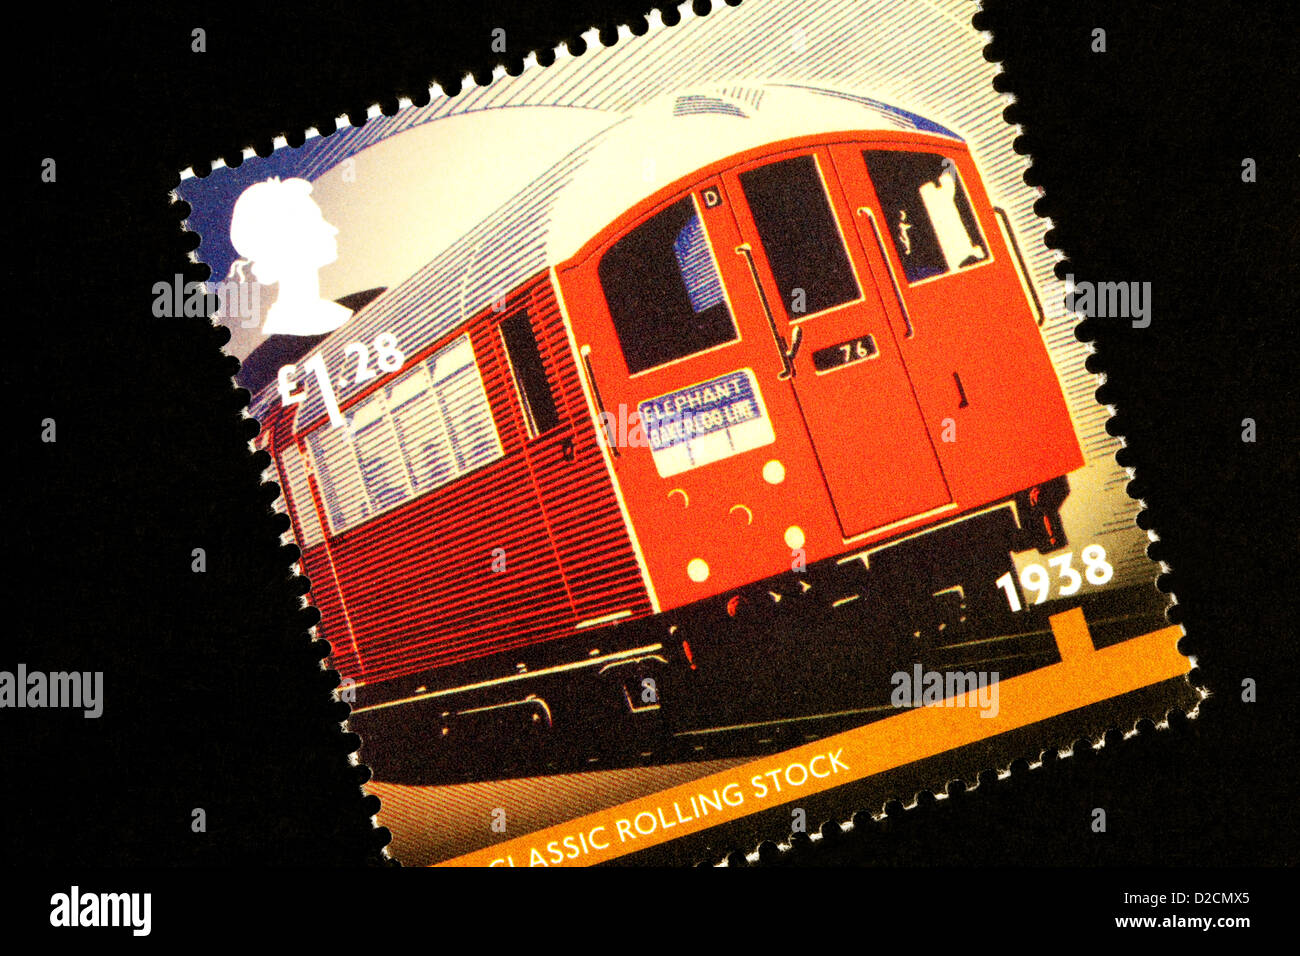 A UK commemorative postage stamp for the 150th Anniversary of the London Underground system, UK issued January 2013 - Stock Image